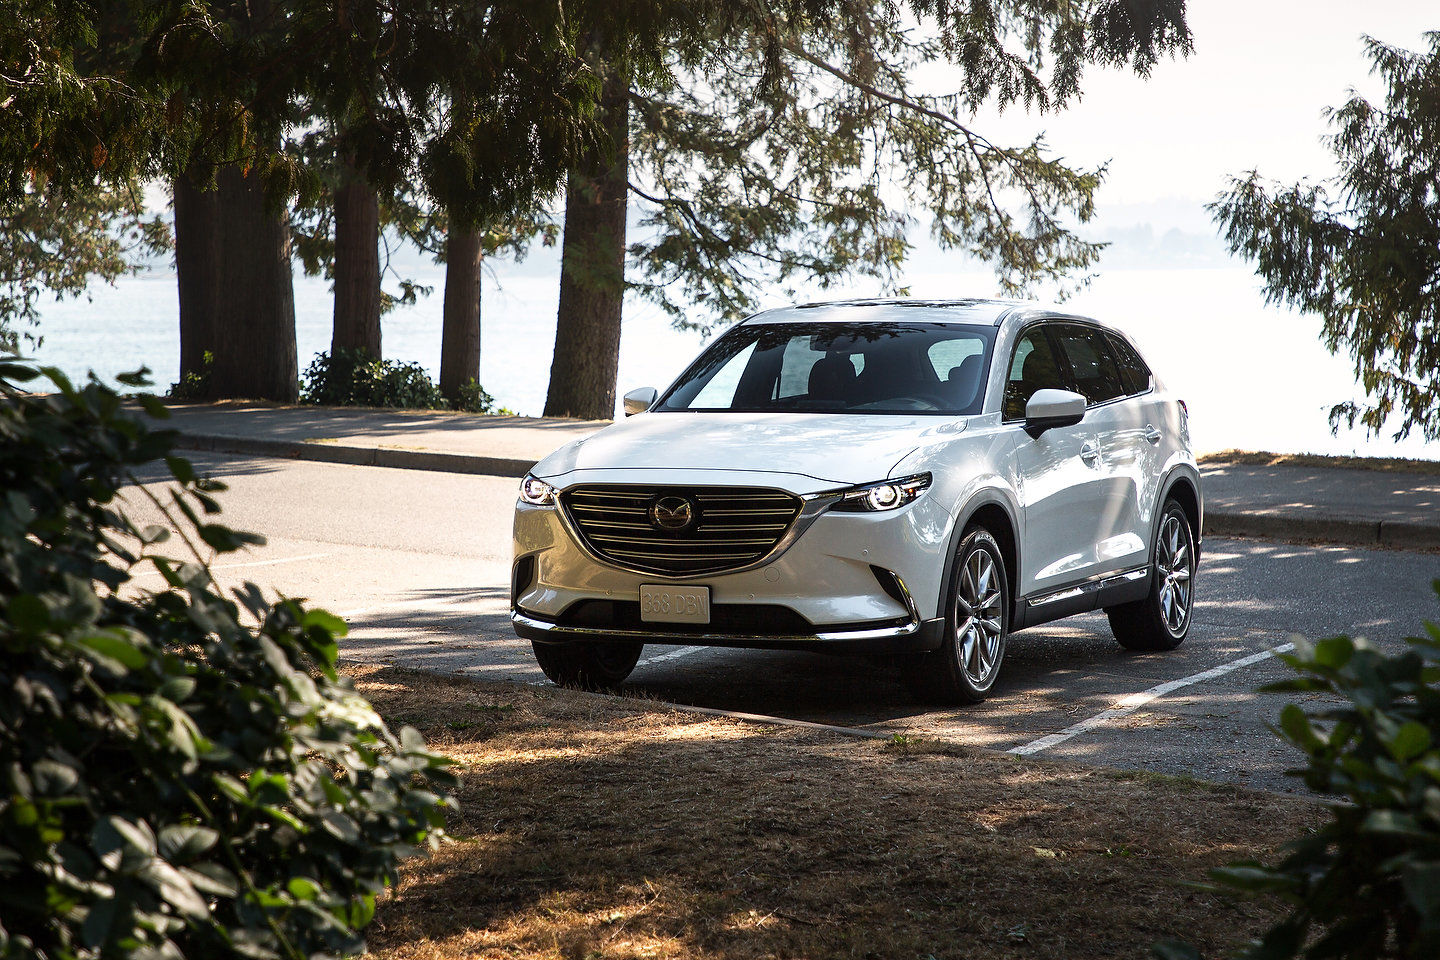 2019 Mazda CX-9: Big and Bold